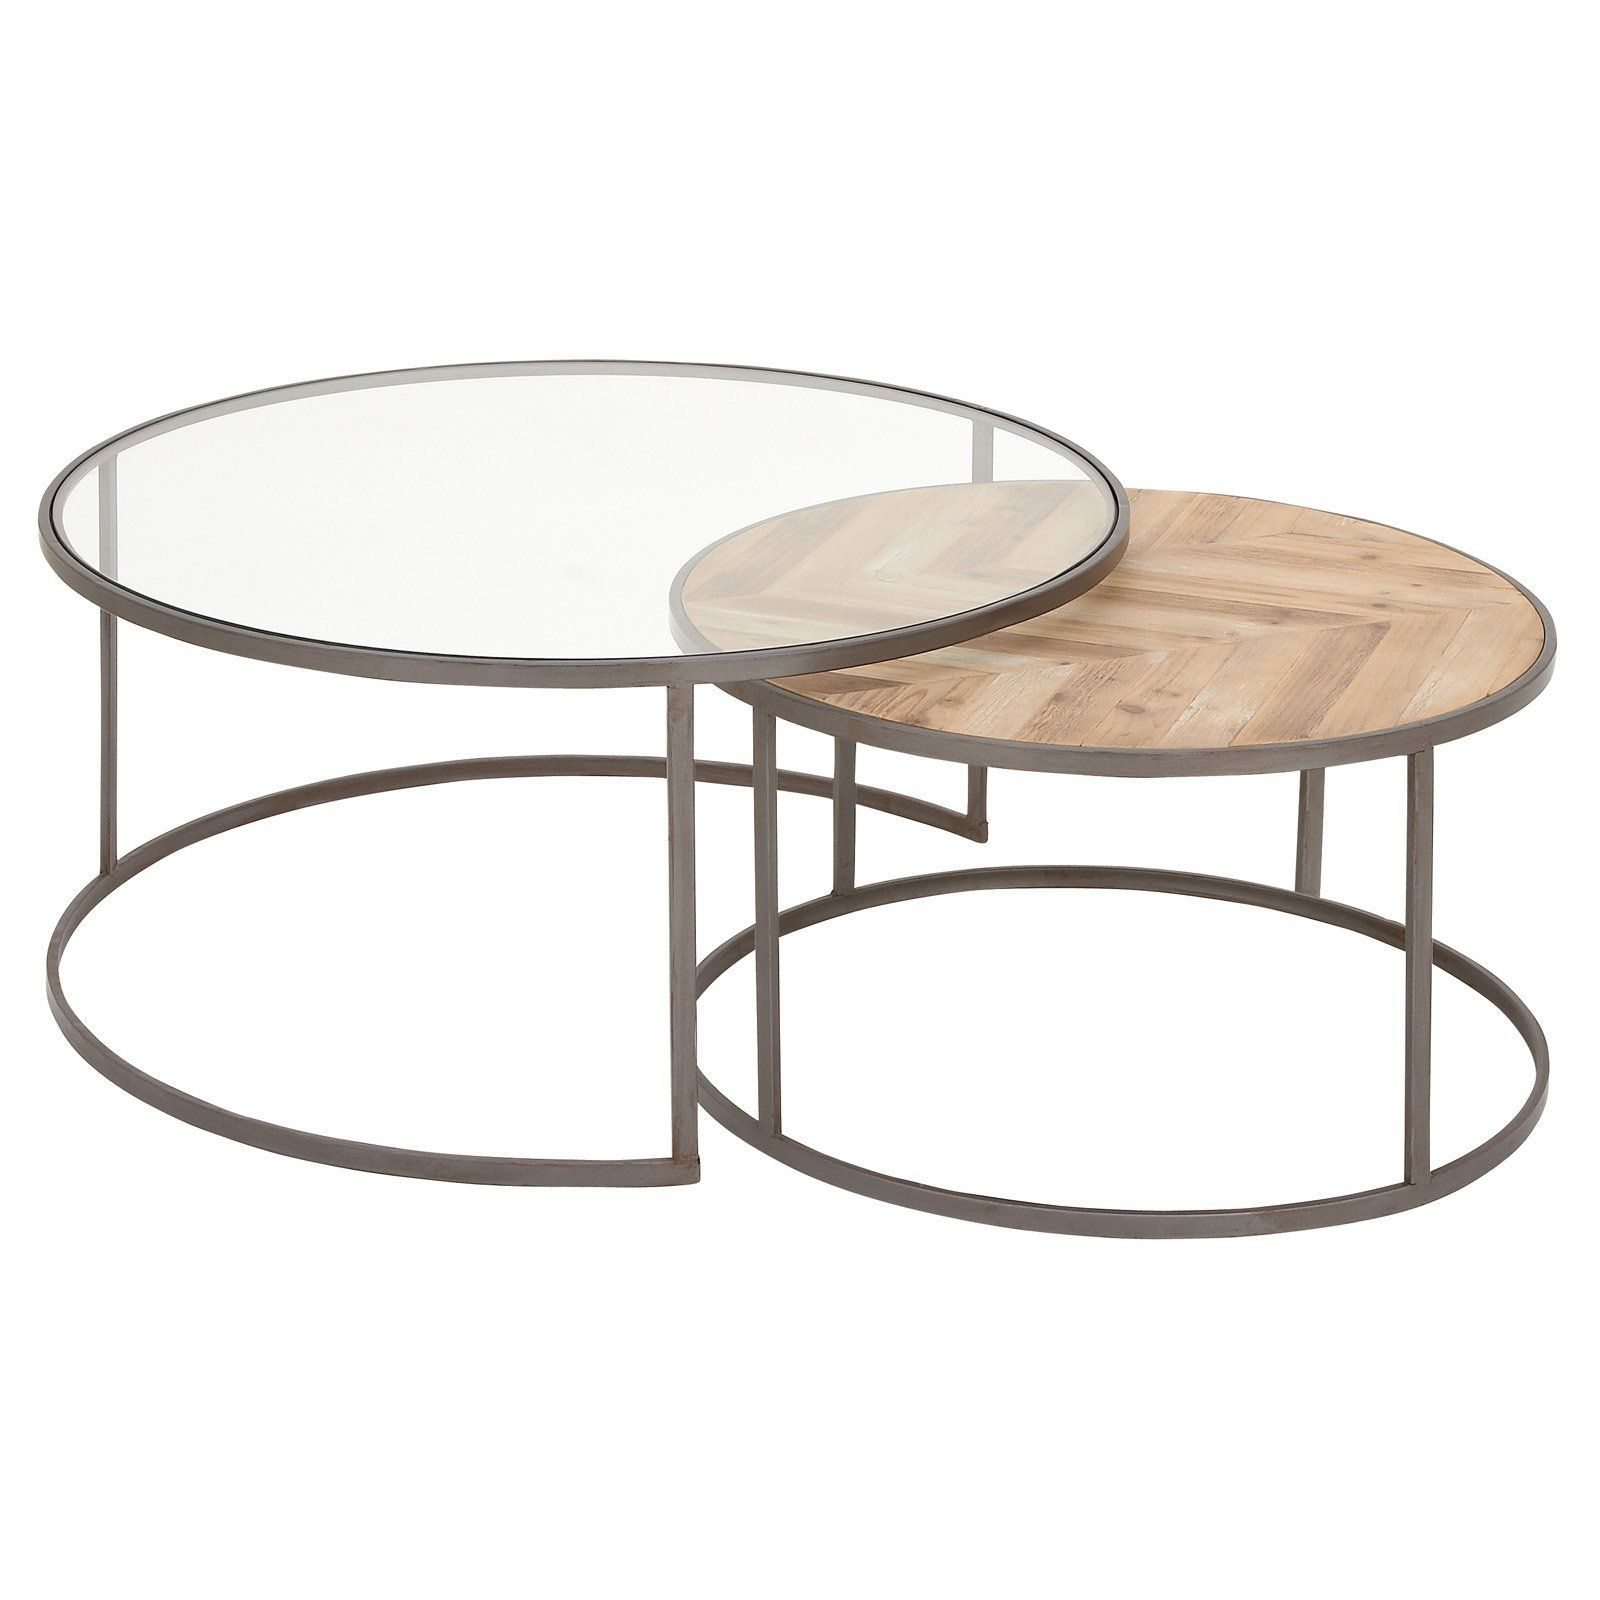 Decmode Round Coffee Table Set Of 2 Nesting Coffee Tables Glass Wood Coffee Table Coffee Table [ 1600 x 1600 Pixel ]